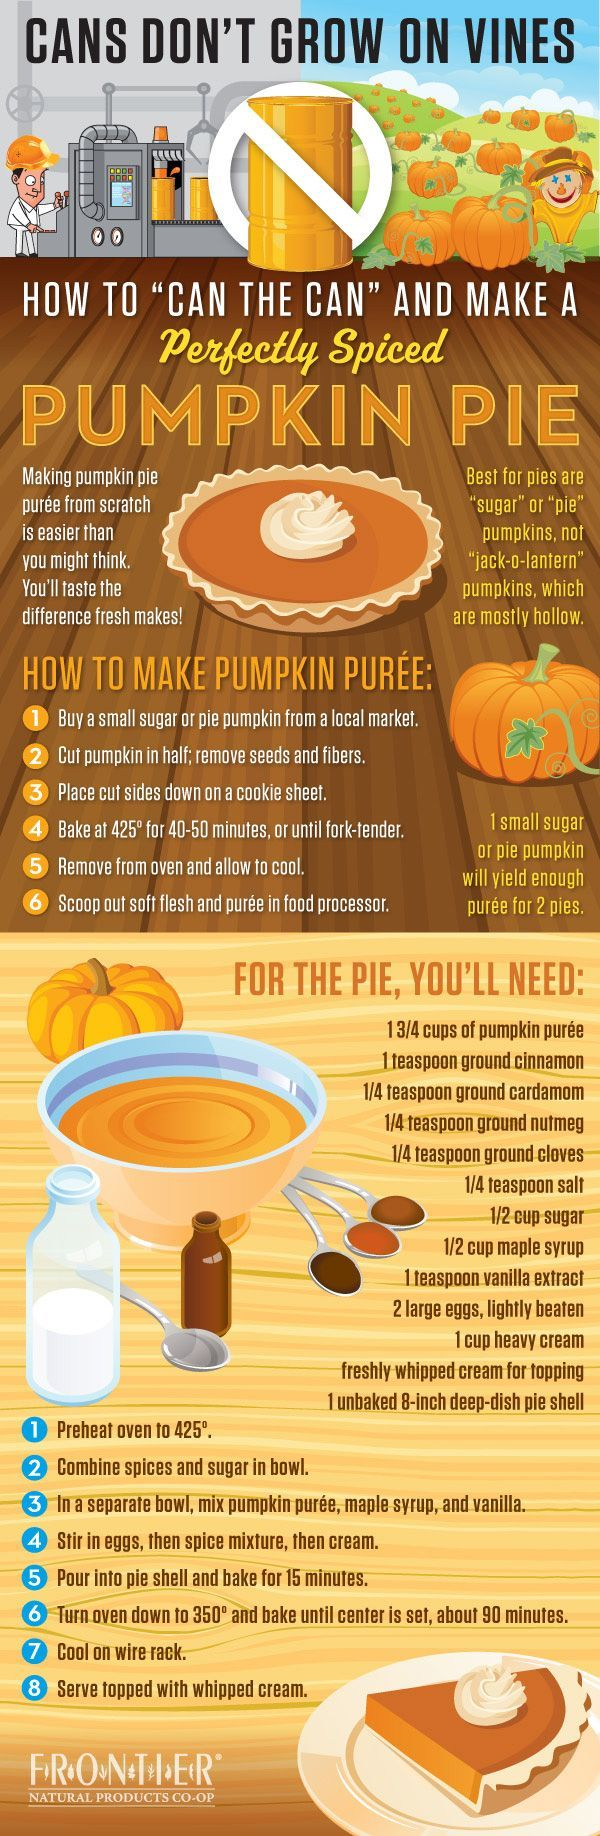 How to make a pumpkin pie from scratch [Infographic] - Richmond Times-Dispatch: Food, Recipes & Entertaining